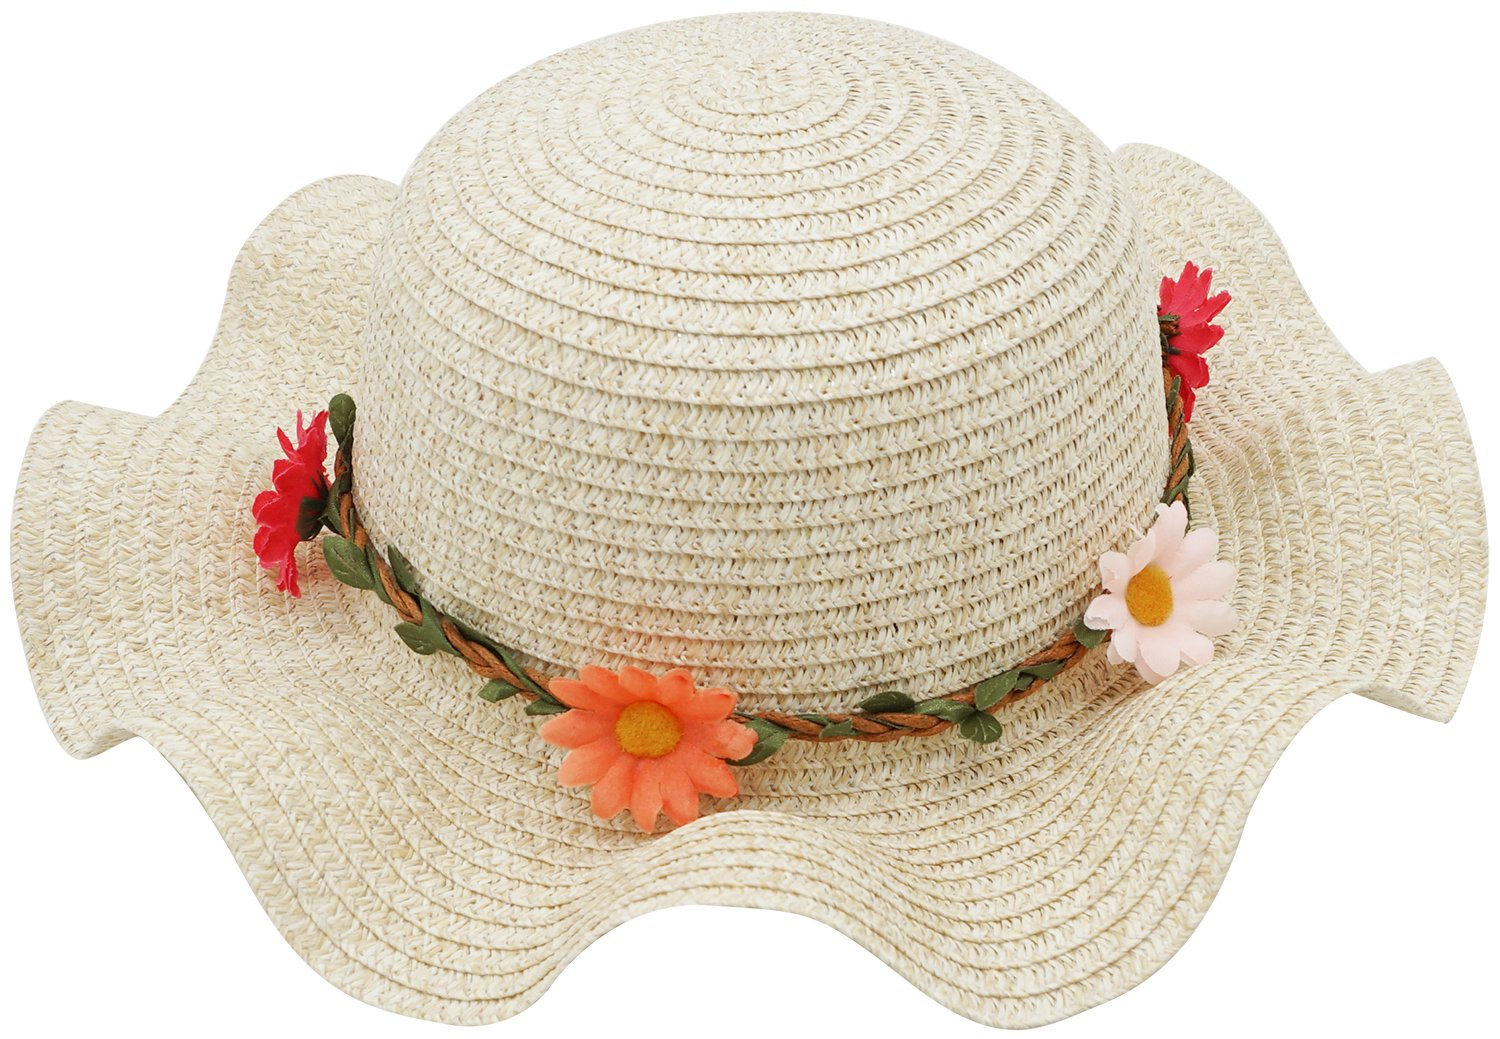 Bienvenu Sun Straw Hat Kids Girls Large Wide Brim Travel Beach Beanie Cap,Beige